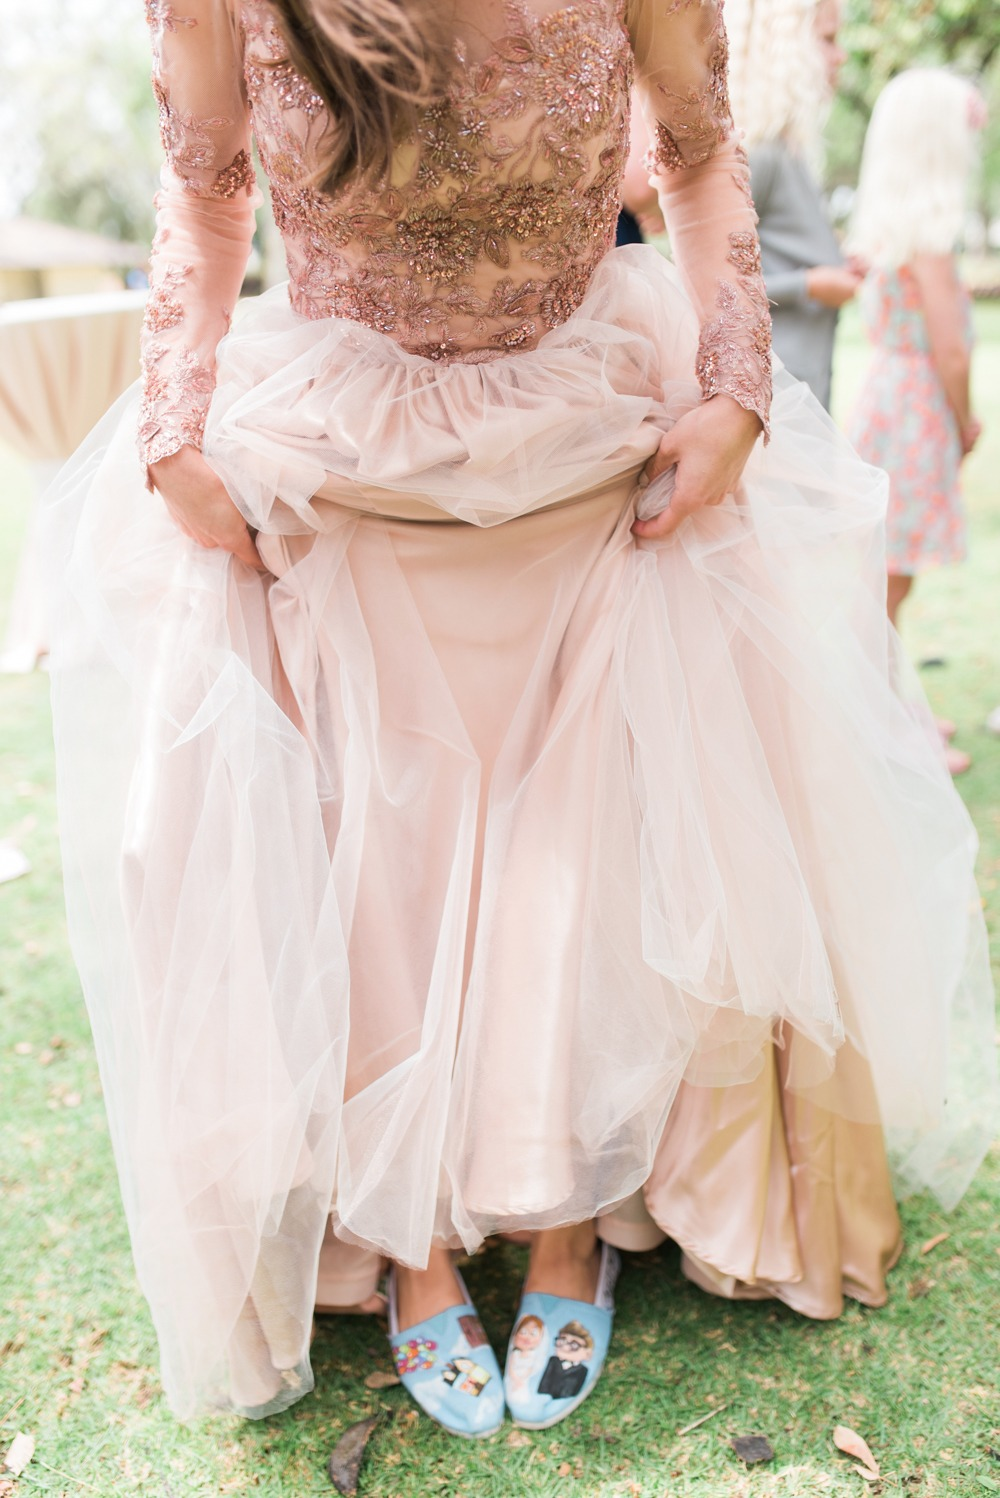 Blush gown and Disney wedding shoes